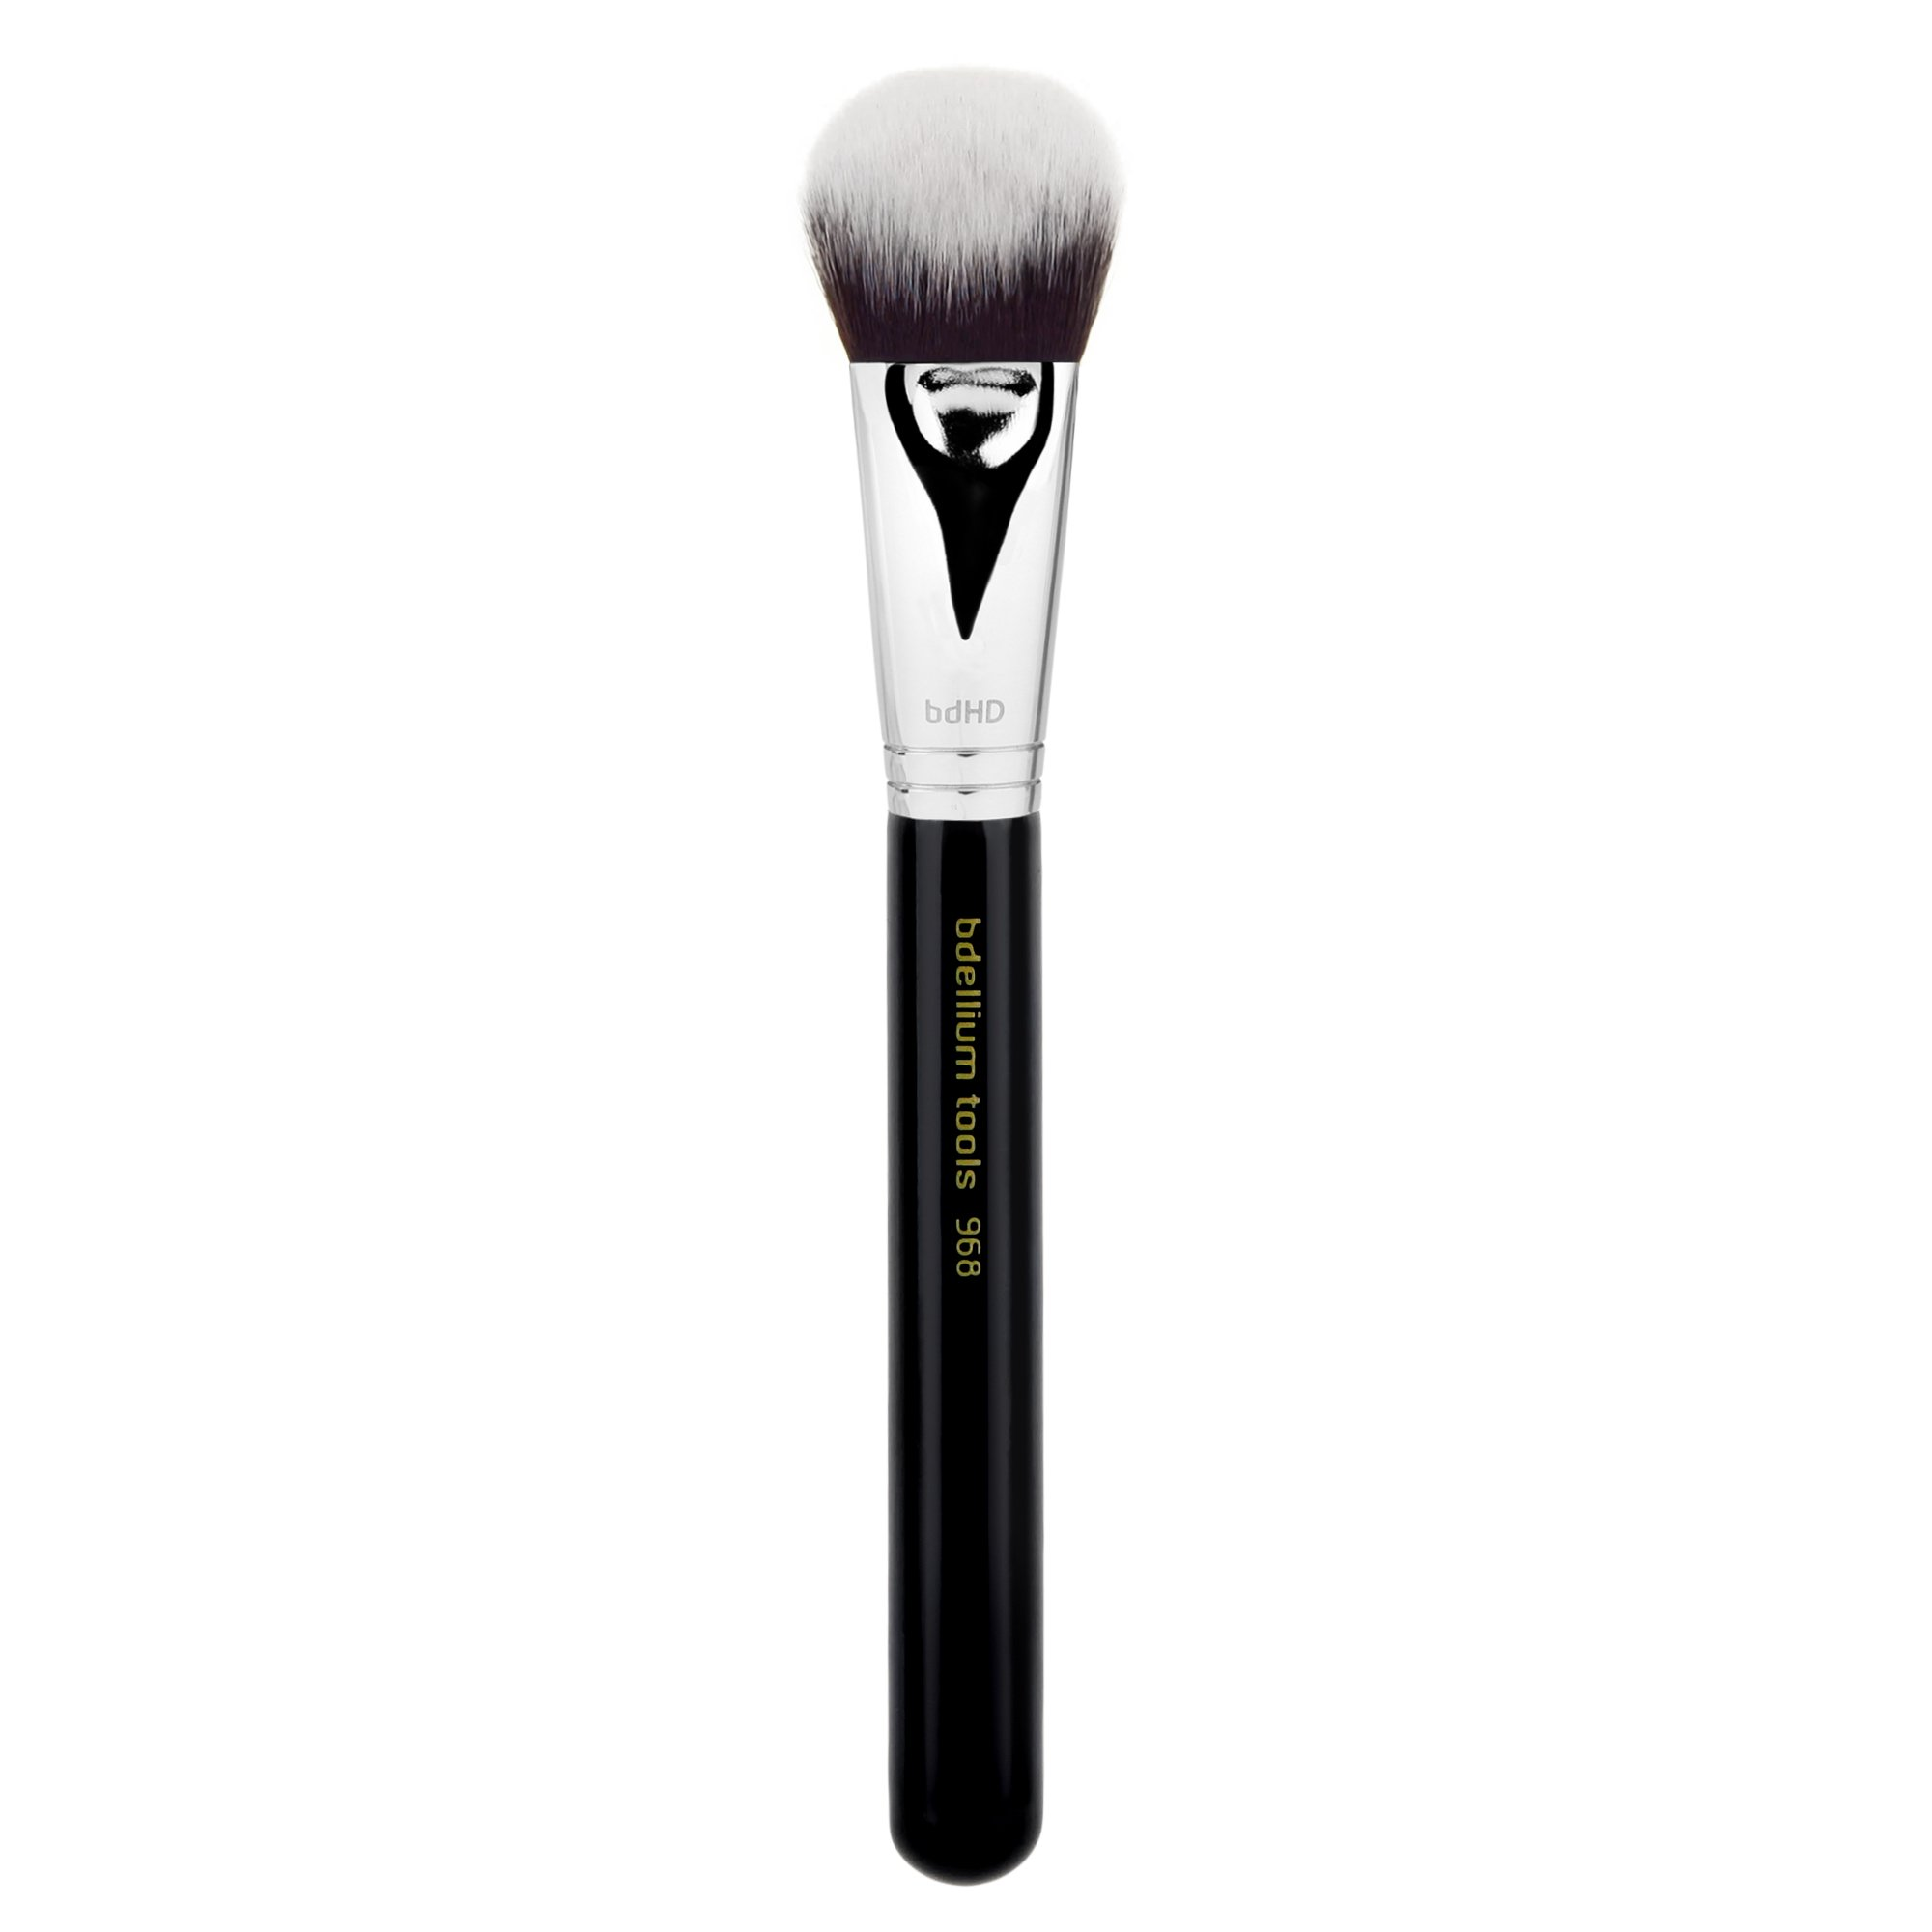 Bdellium Tools Professional Makeup Brush Maestro Series - BDHD Phase II Small Foundation / Contour 968